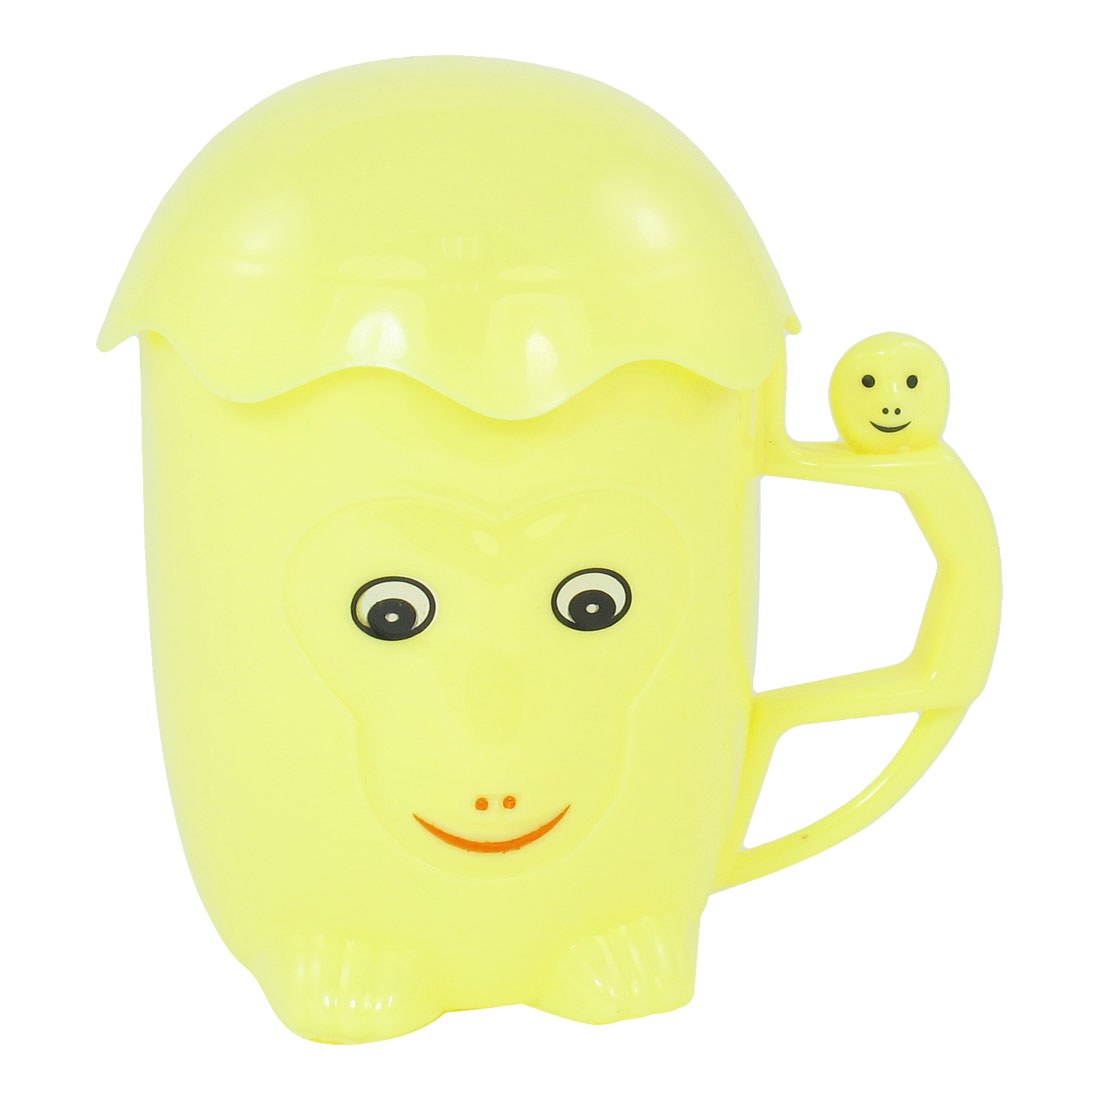 Home Office Cartoon Monkey Style Plastic Drink Mug Cup Yellow